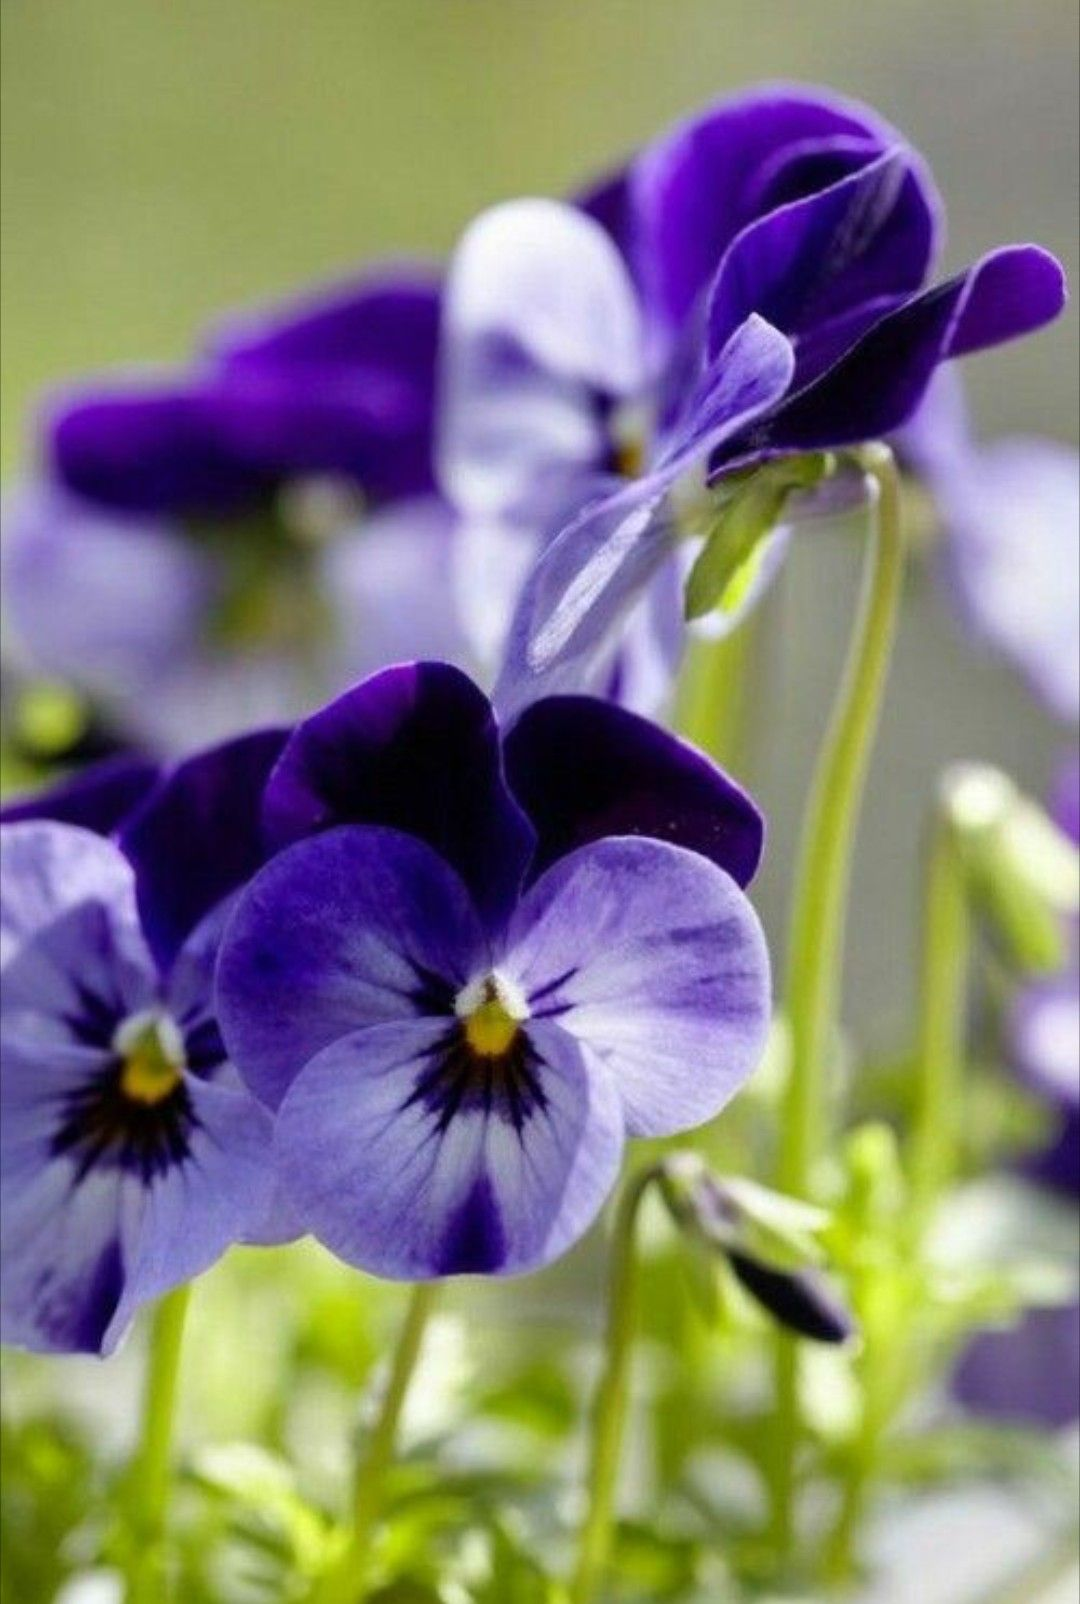 Pin By Prudence Ruth On Hearts Ease Pansies Amazing Flowers Purple Flowers